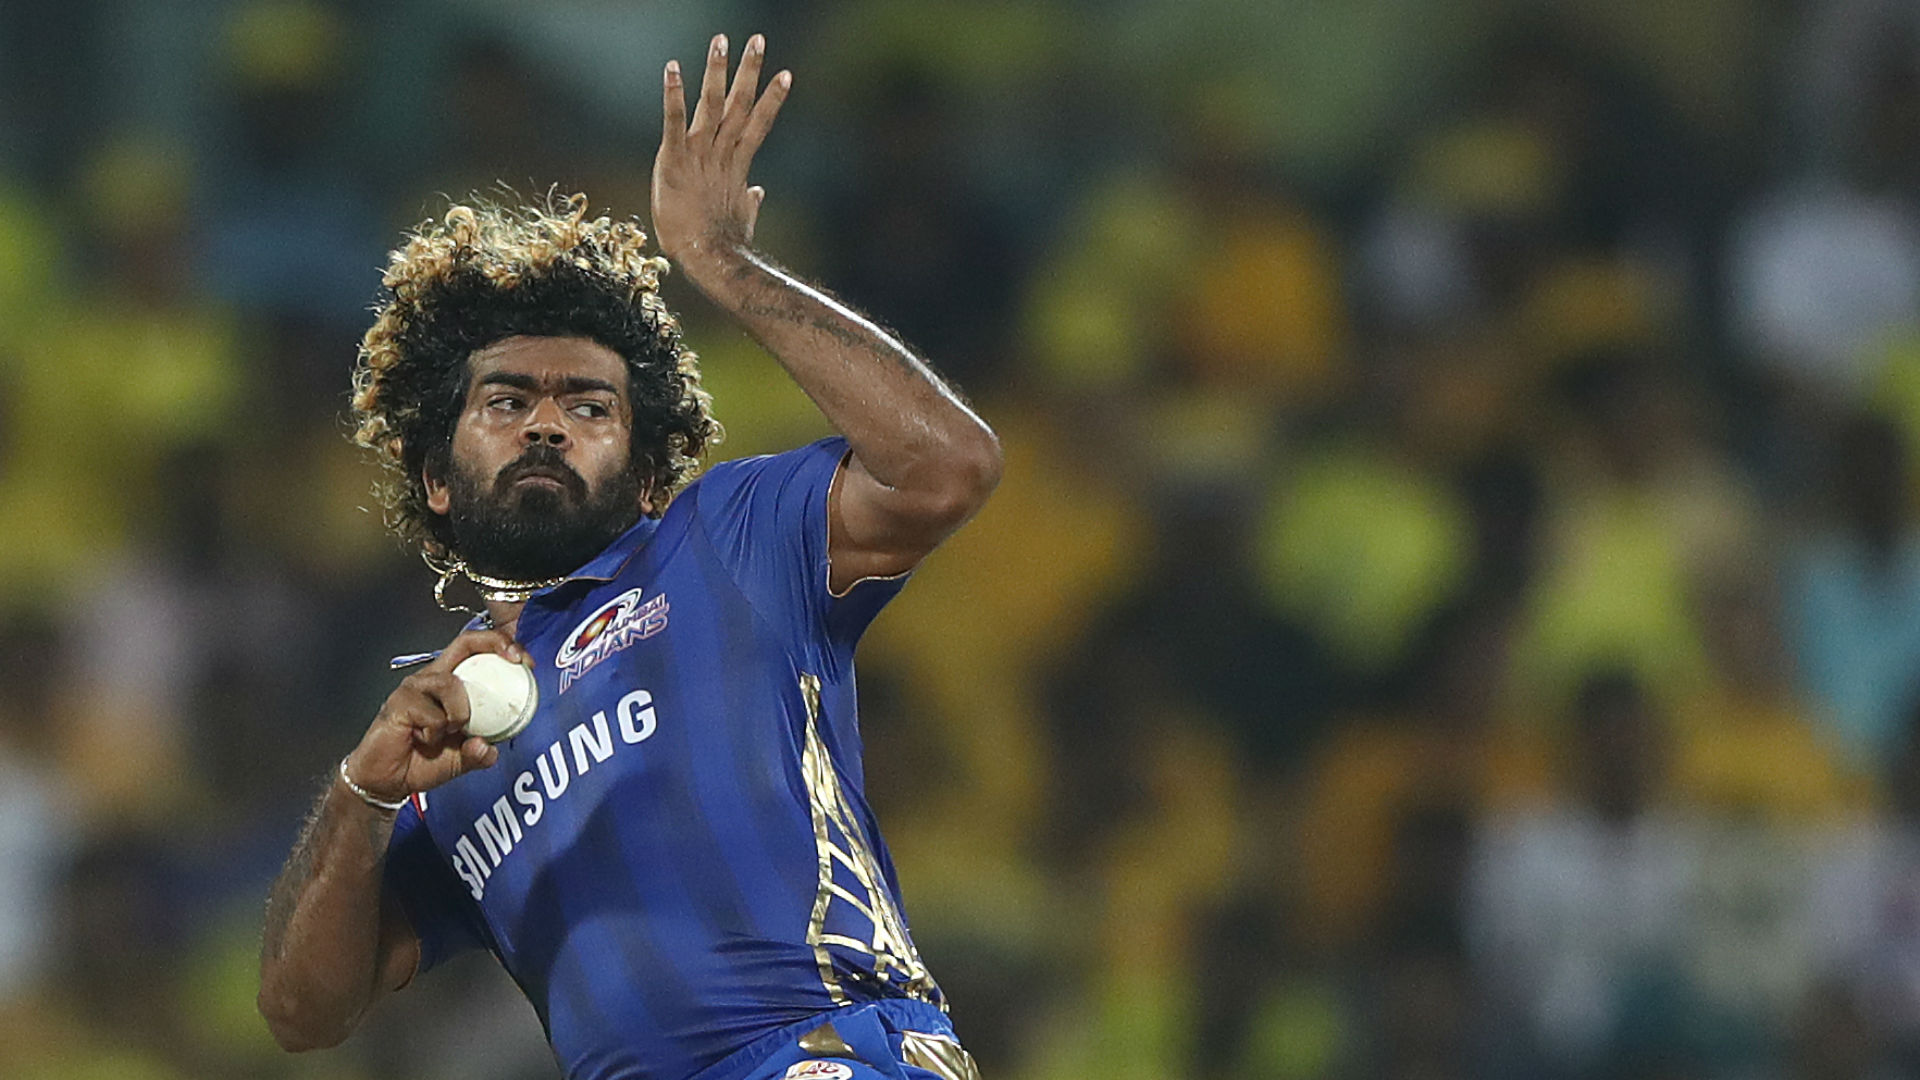 Ice-cool Malinga seals dramatic record IPL triumph for Indians